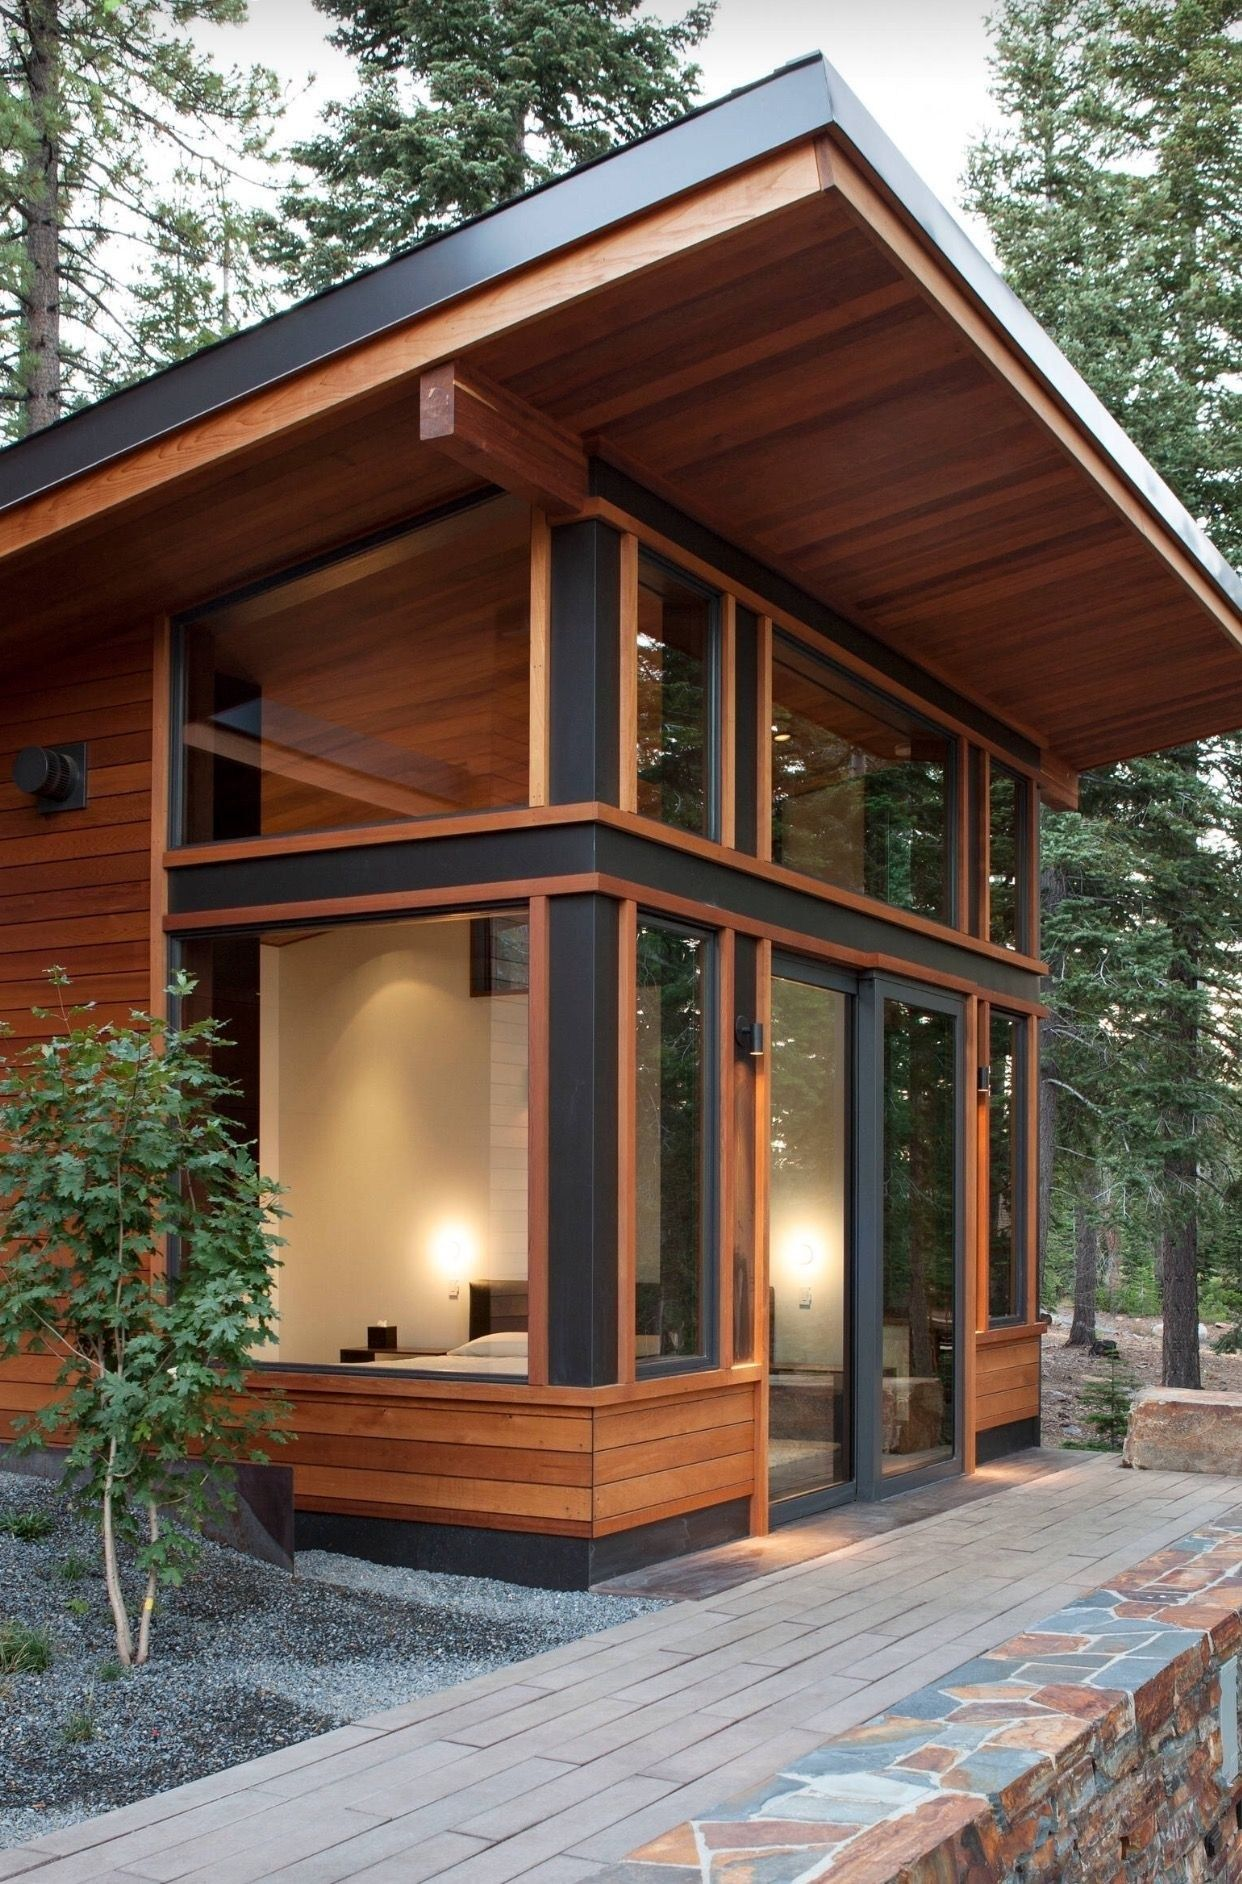 New 60 Small Mountain Cabin Plans With Loft Small House Design